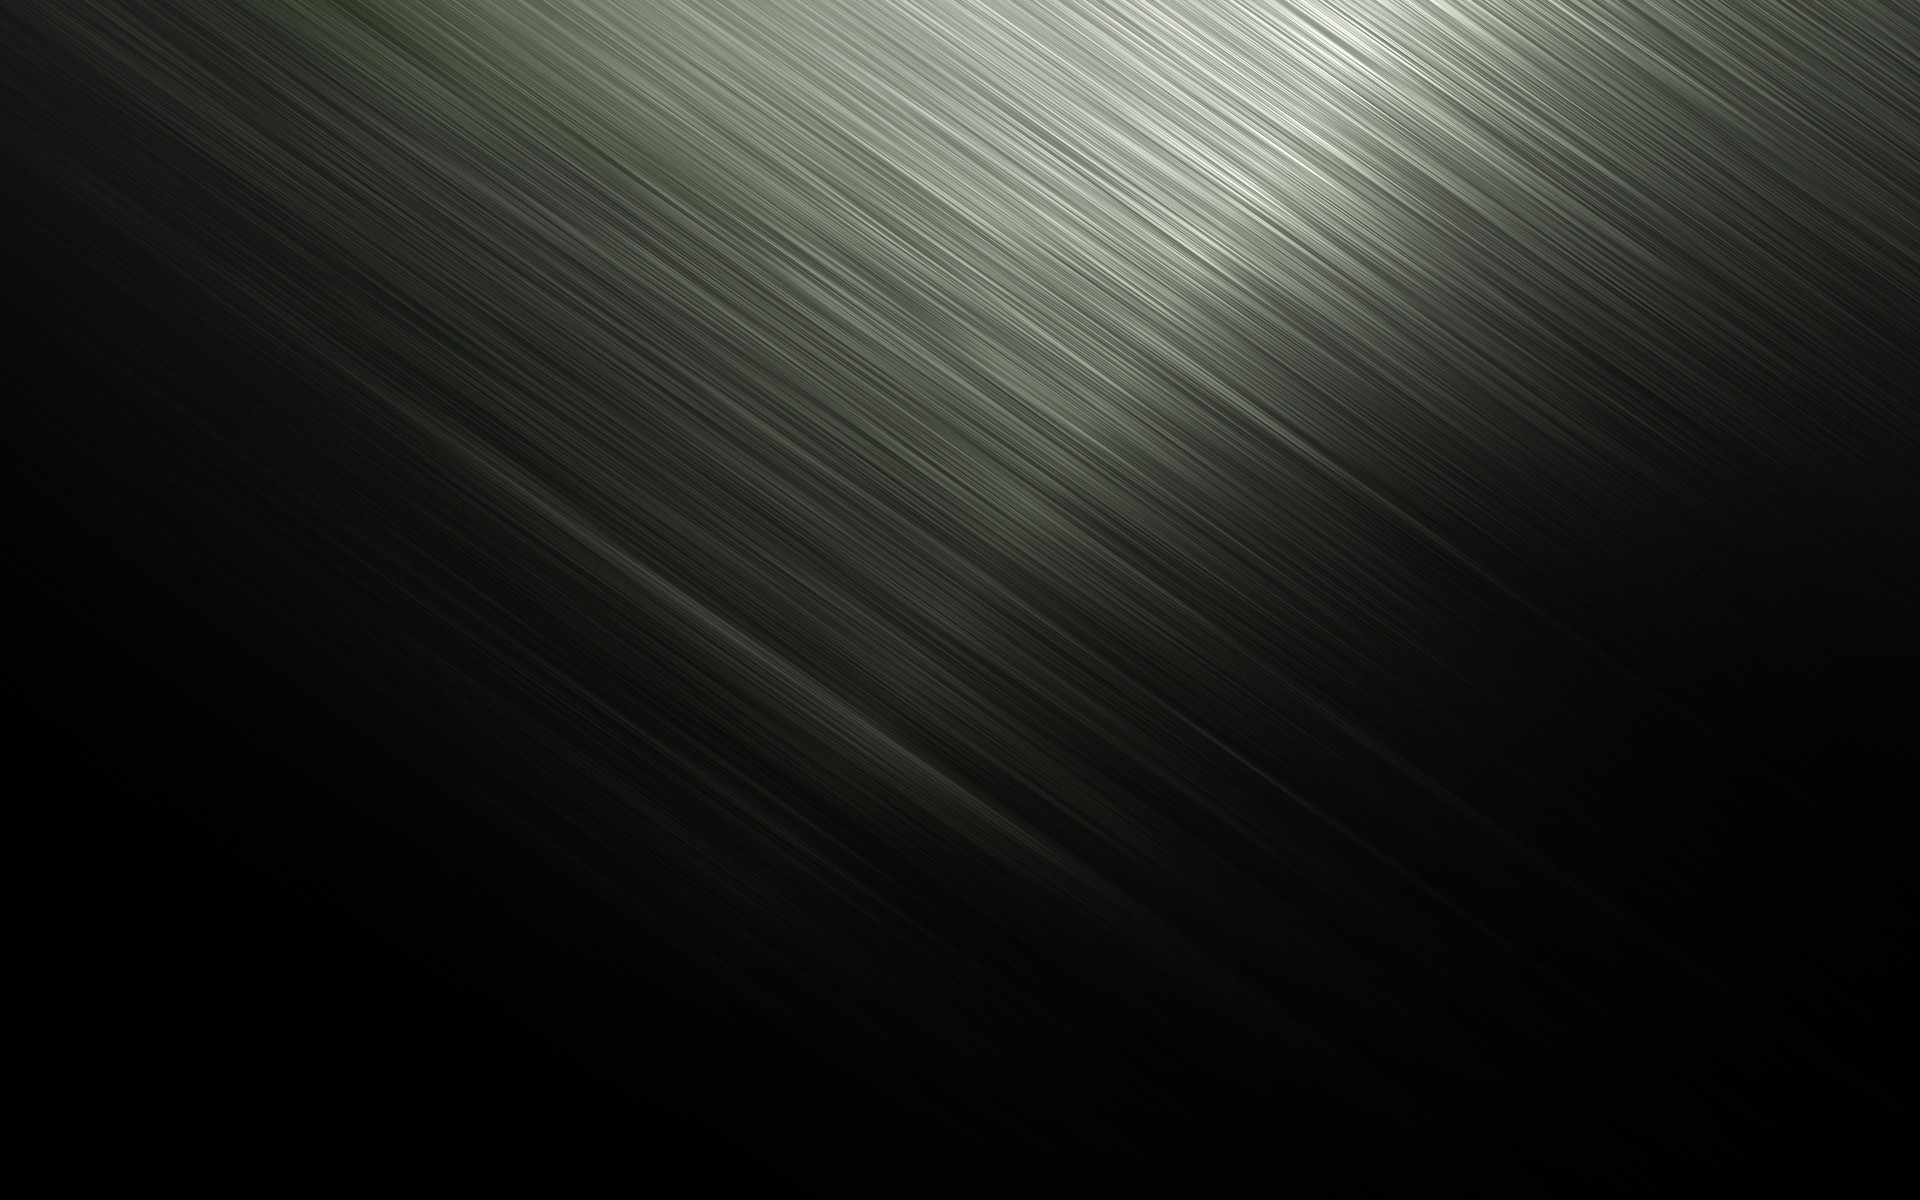 Download Abstract Black Wallpaper 1920x1200 Wallpoper 1920x1200